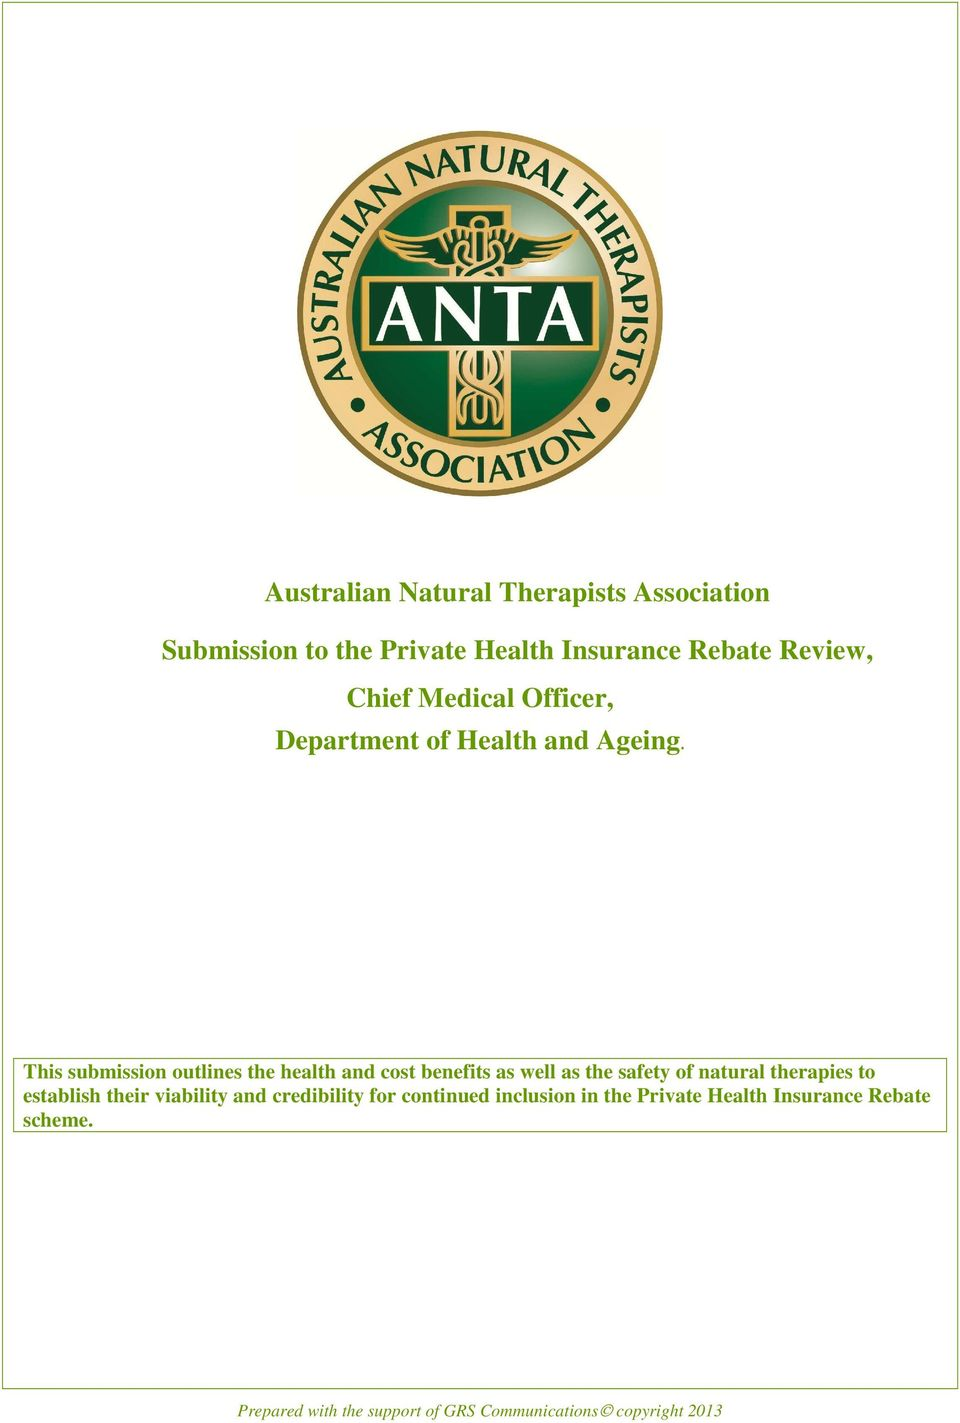 This submission outlines the health and cost benefits as well as the safety of natural therapies to